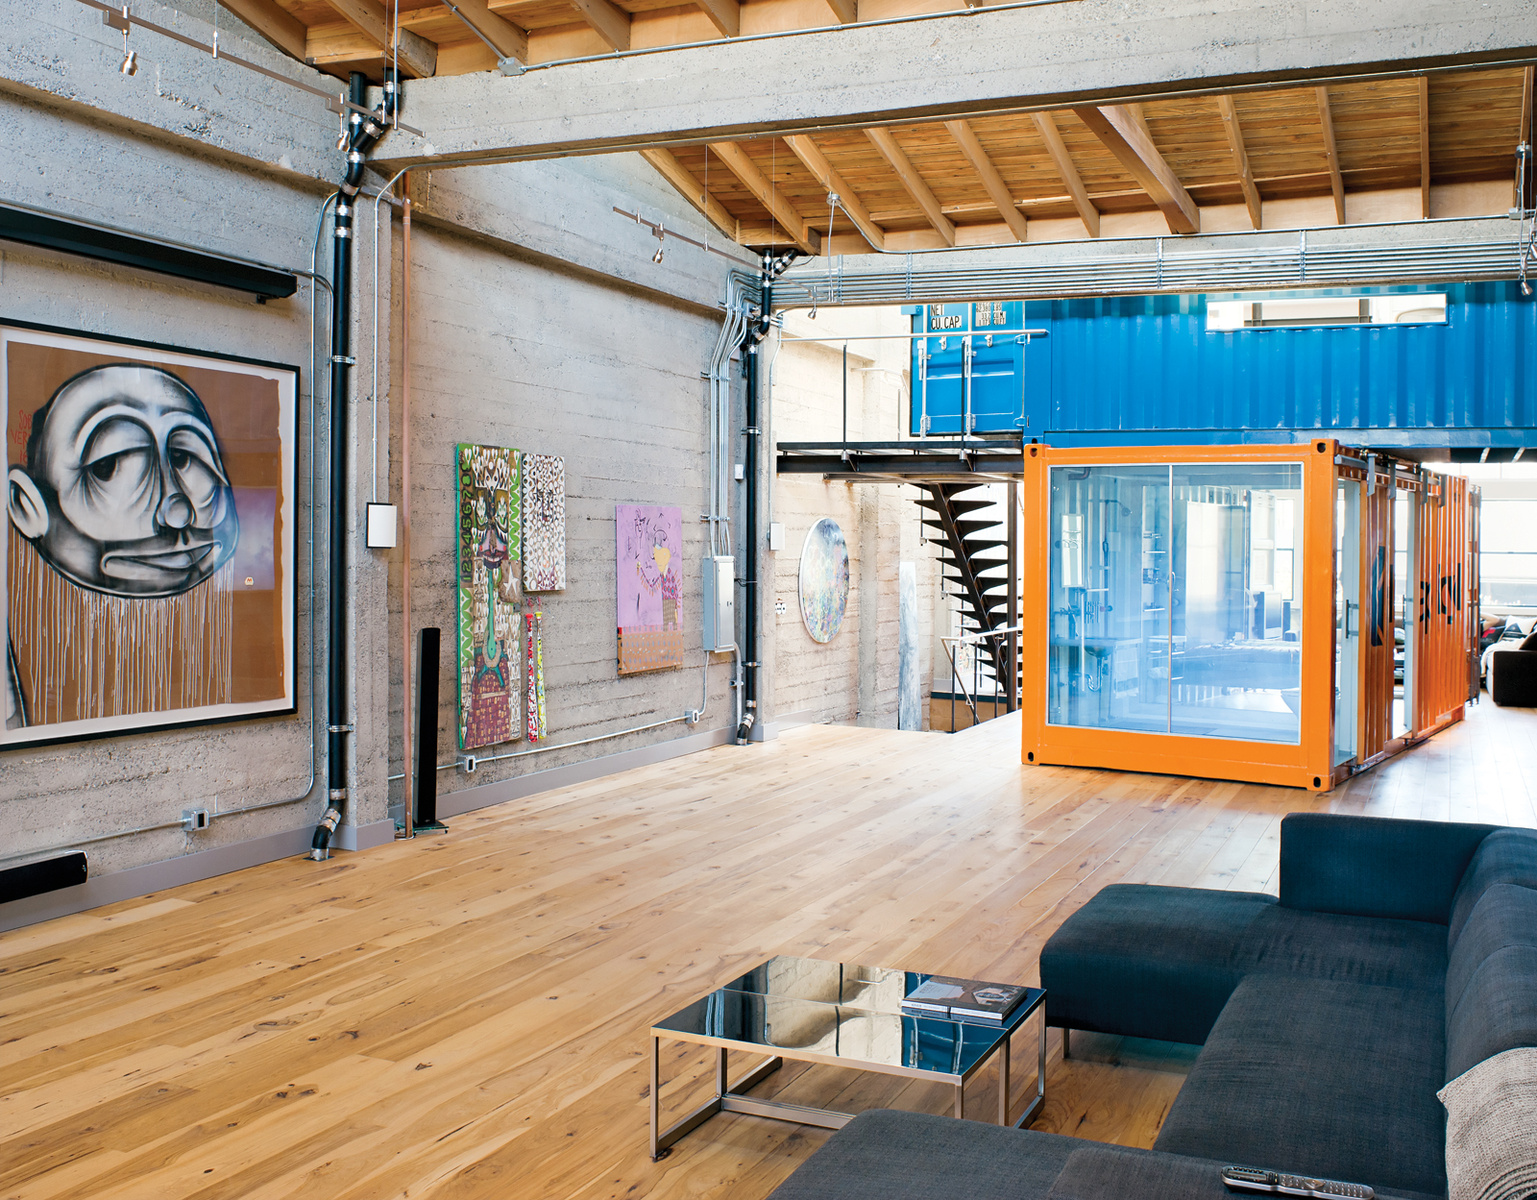 Shipping container homes shipping containers in loft apartment san francisco california - Deco design fabriek ...